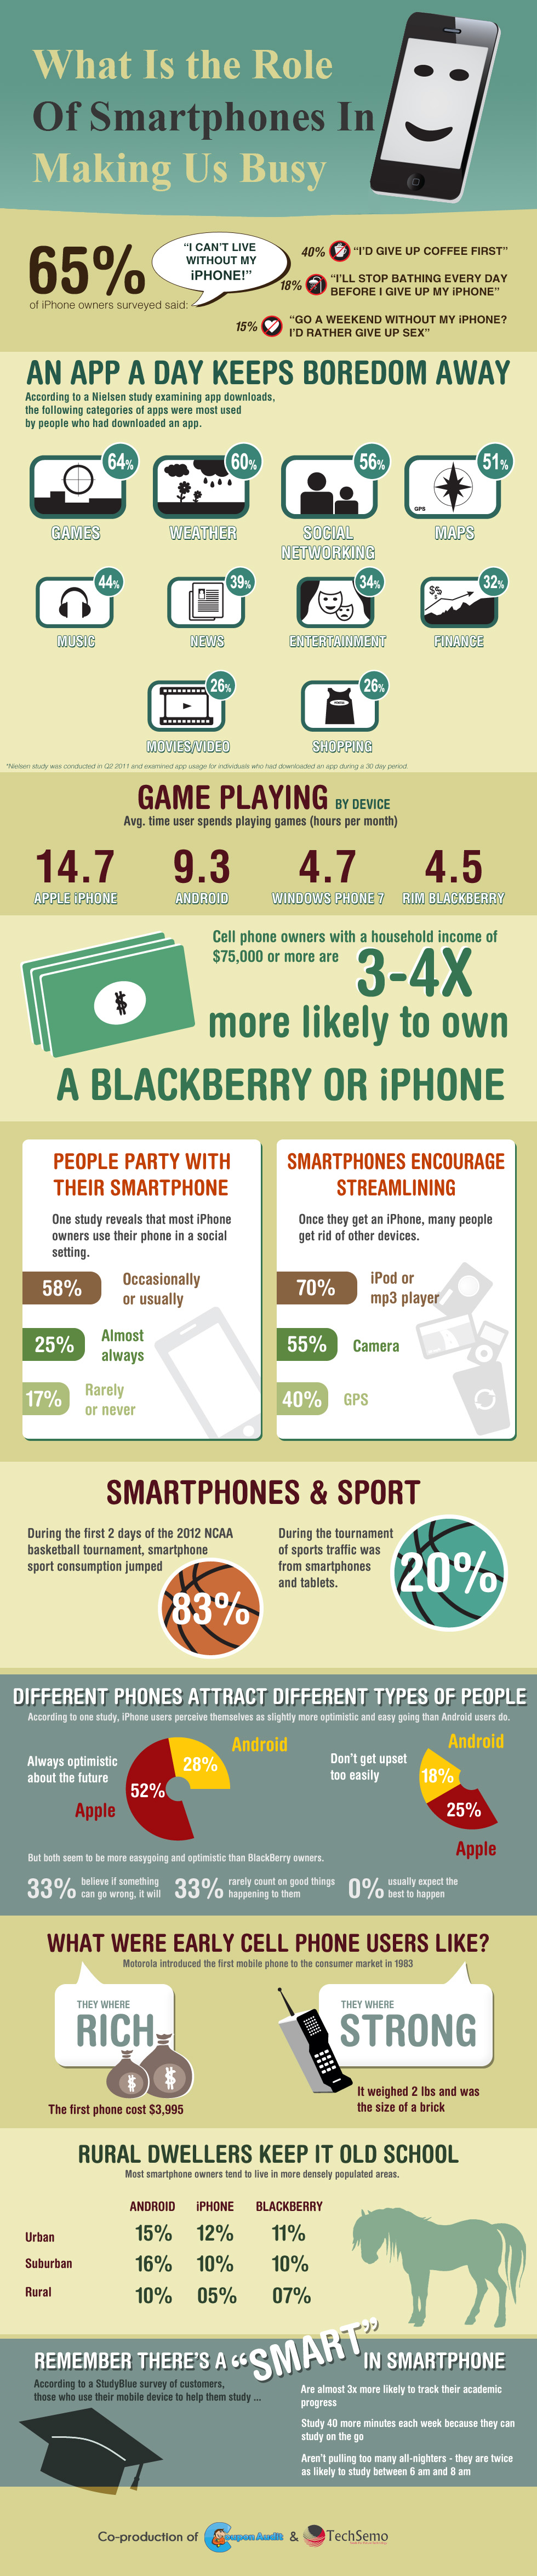 What Is the Role Of Smartphones In Making Us Busy?